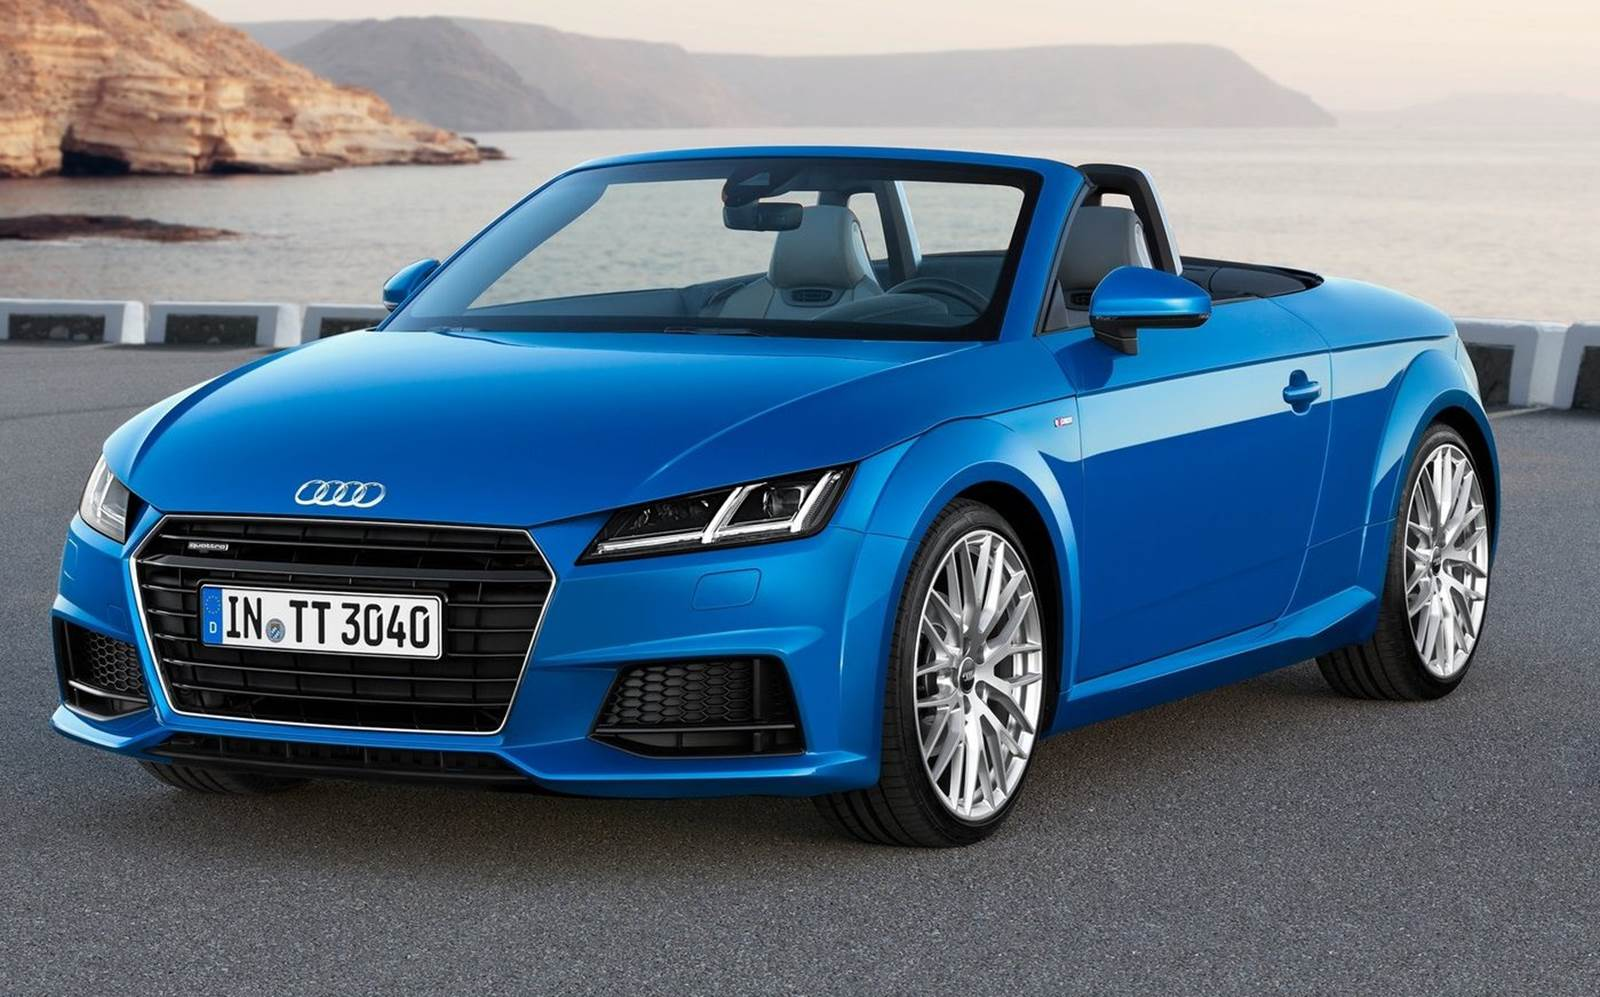 novos audi tt e tt s roadster 2015 especifica es oficiais car blog br. Black Bedroom Furniture Sets. Home Design Ideas